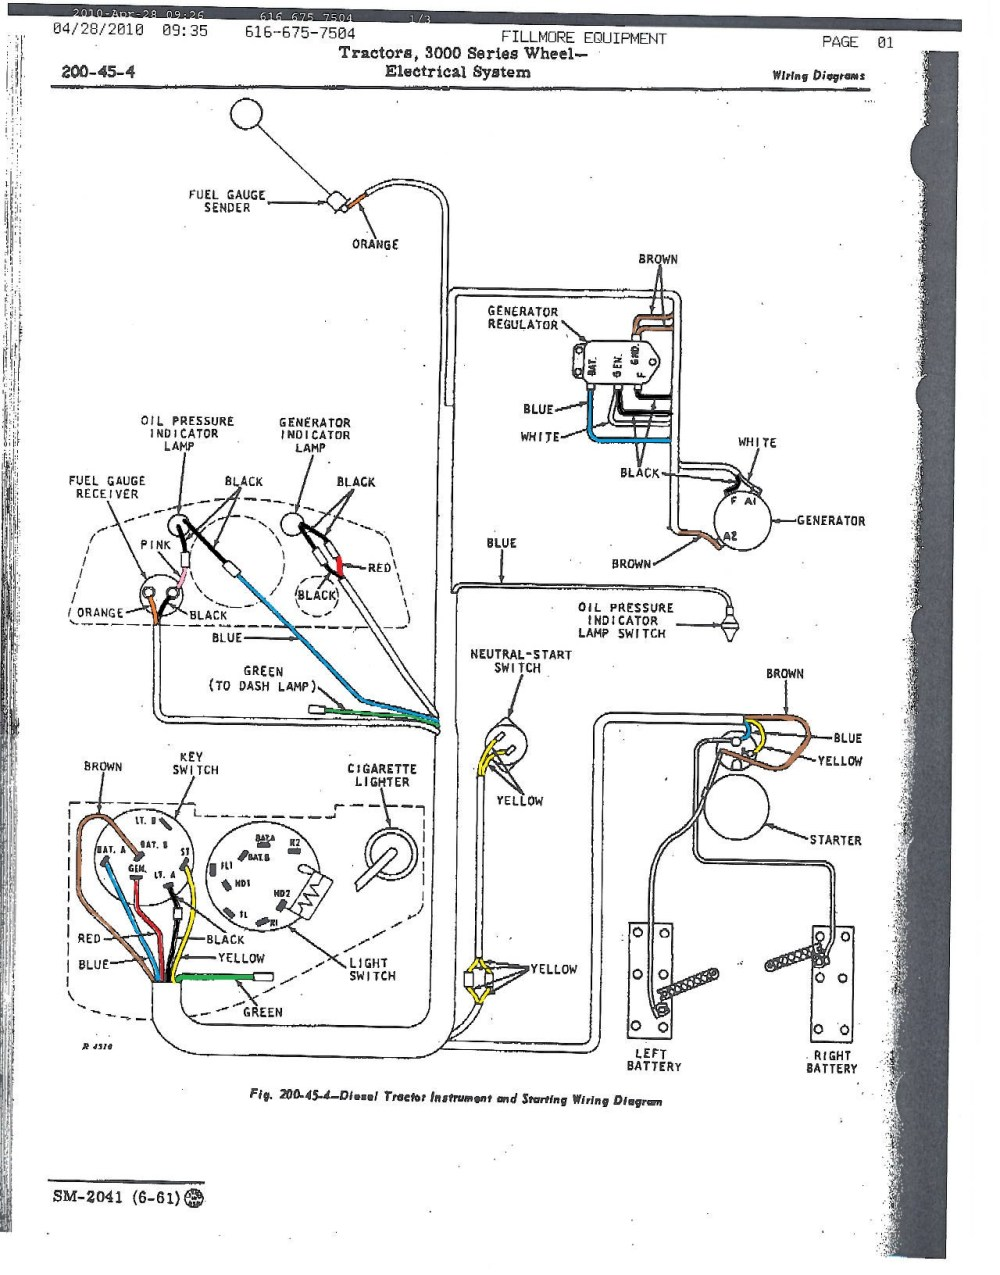 medium resolution of 3010 rh charliemckinley com kawasaki engines diagrams toro z5035 19 hp kawasaki engine diagram